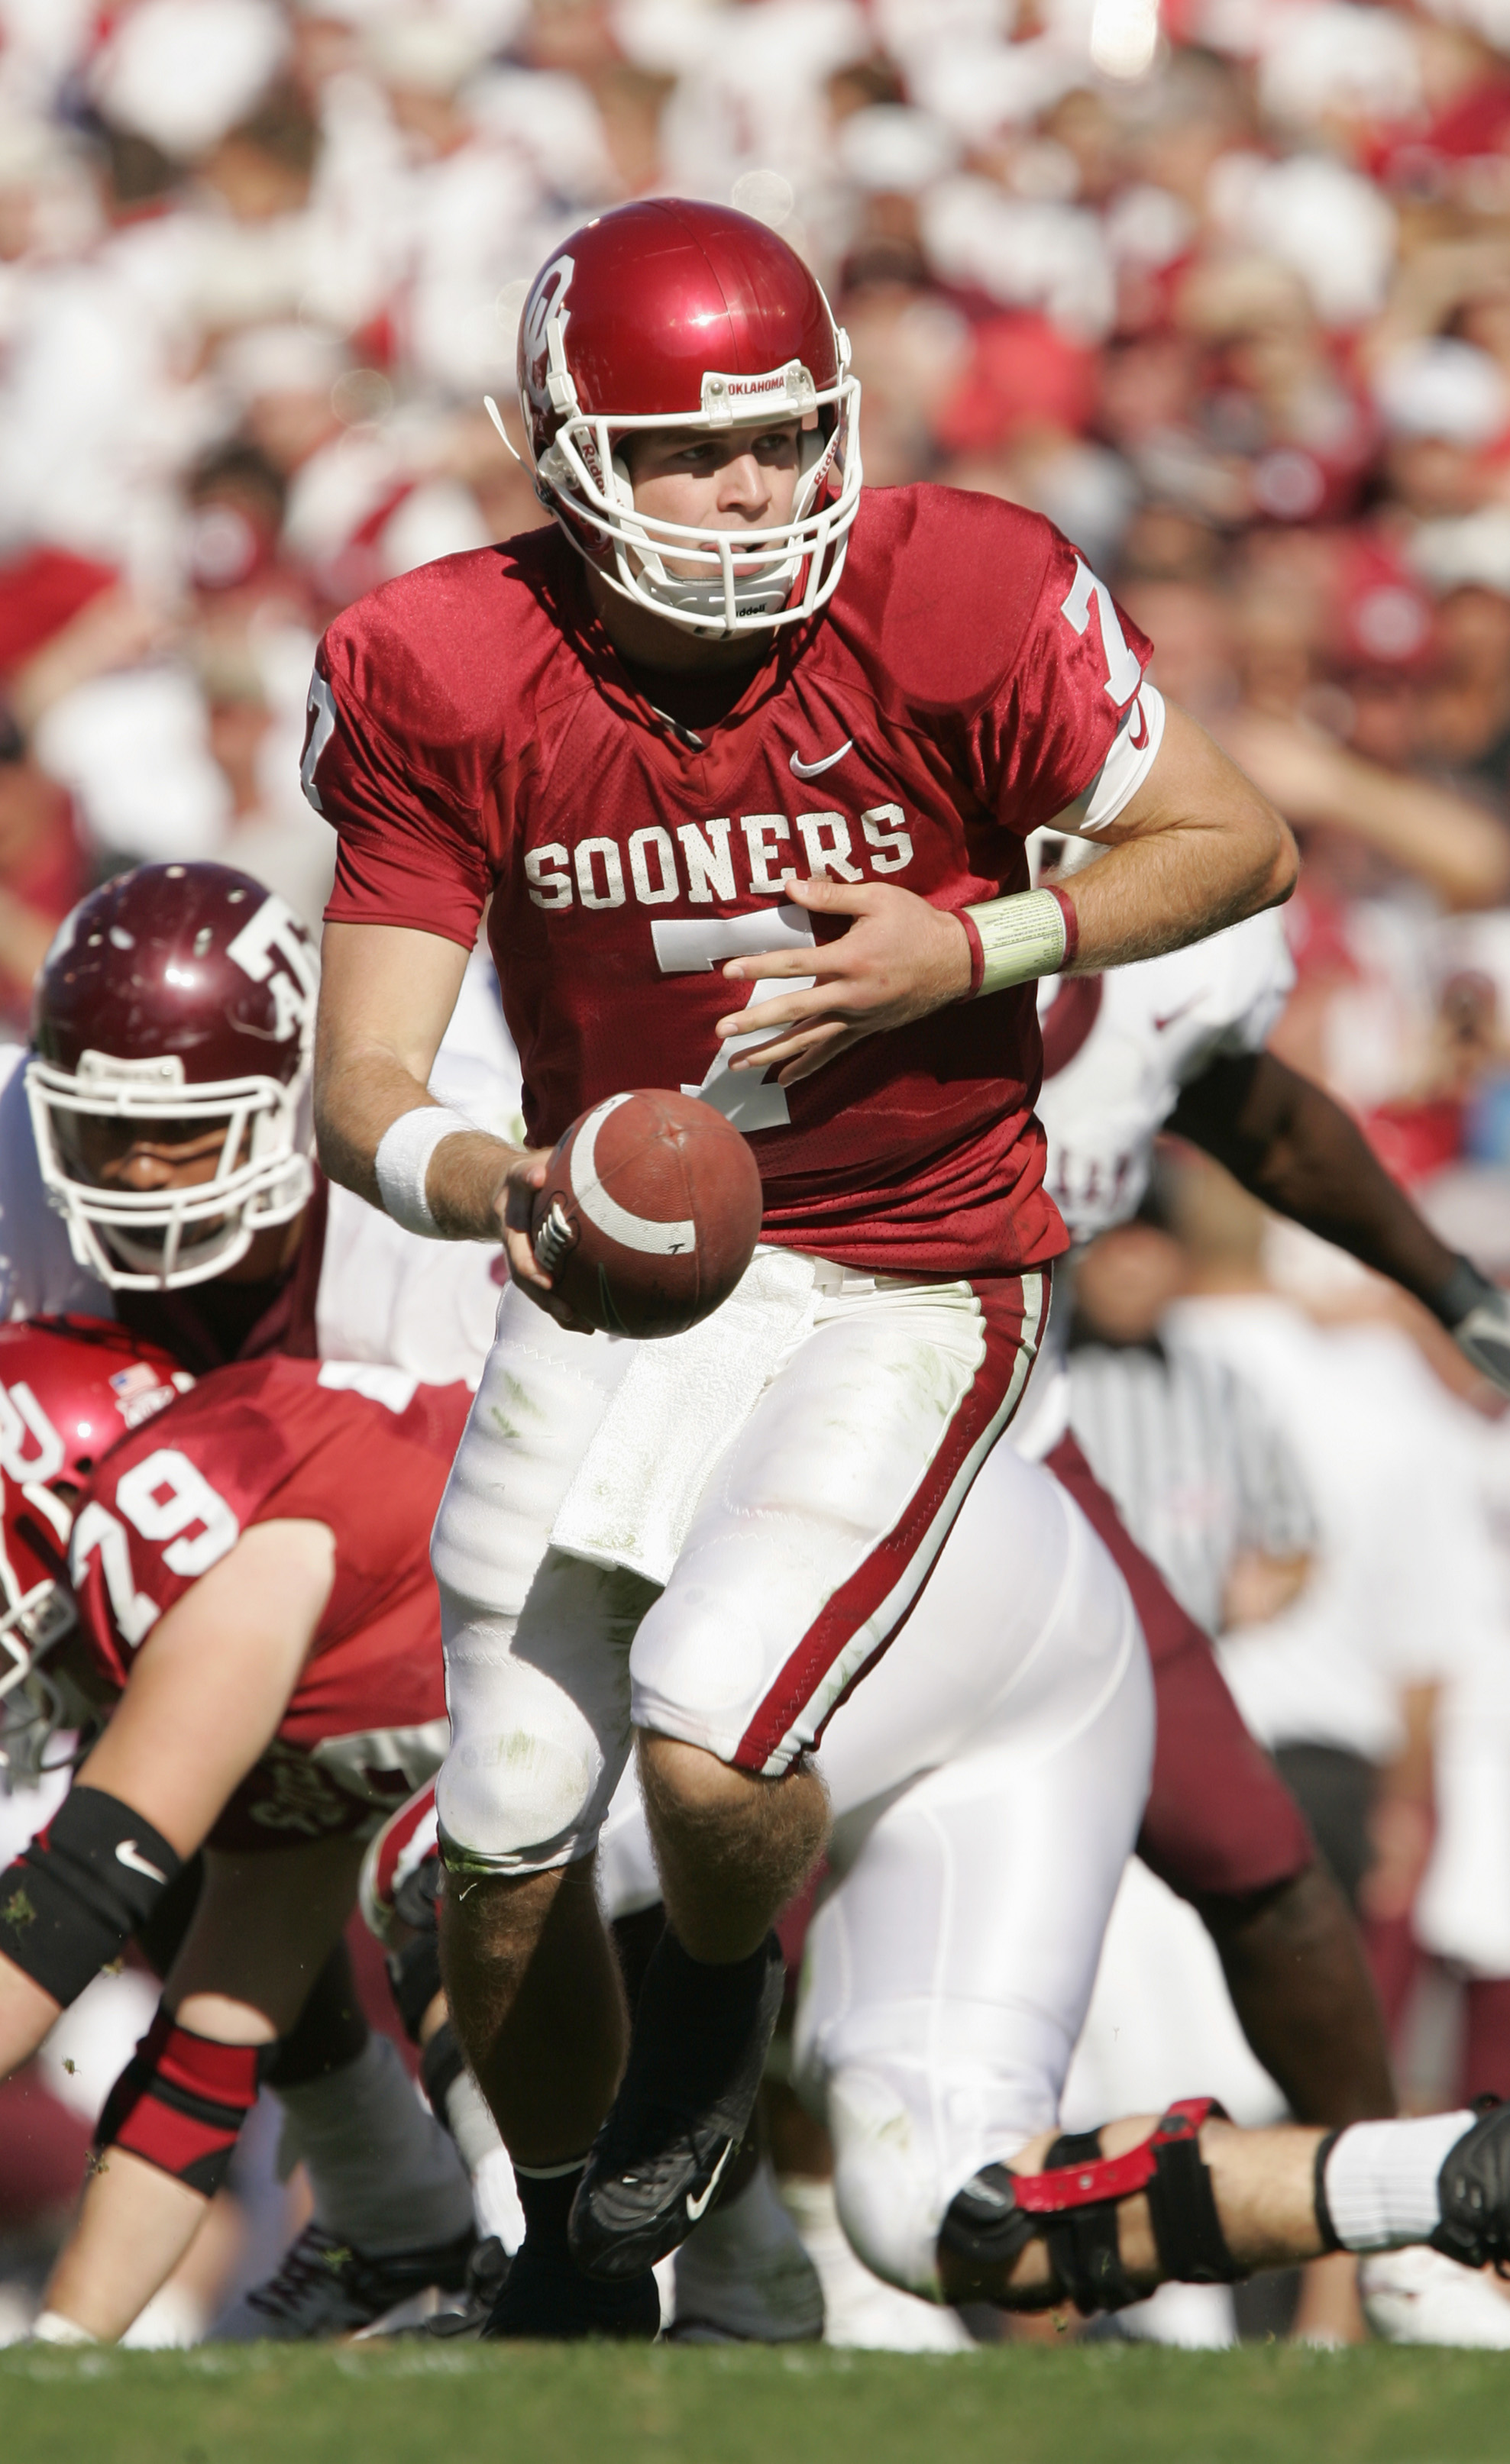 NORMAN, OK - NOVEMBER 12:  Quarterback Rhett Bomer #7 of the Oklahoma Sooners moves to hand-off during the game against the Texas A&M Aggies on November 12, 2005 at Memorial Stadium in Norman, Oklahoma.  The Sooners won 36-30.  (Photo by Brian Bahr/Getty